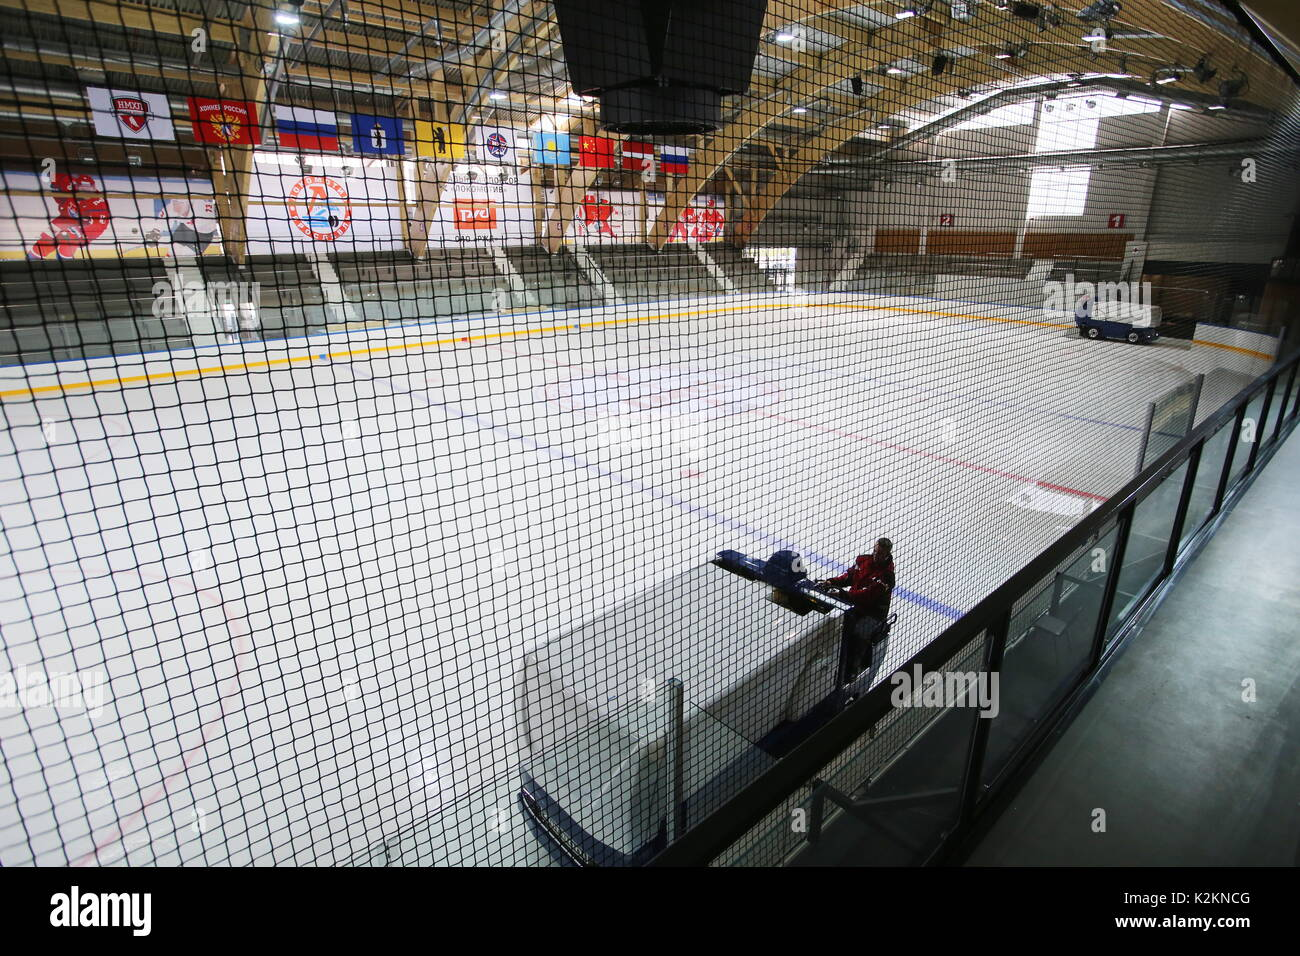 Yaroslavl, Russia. 1st Sep, 2017. Ice hockey arena at State Olympic Reserve Ice Hockey School facilities. Credit: Vladimir Gerdo/TASS/Alamy Live News - Stock Image